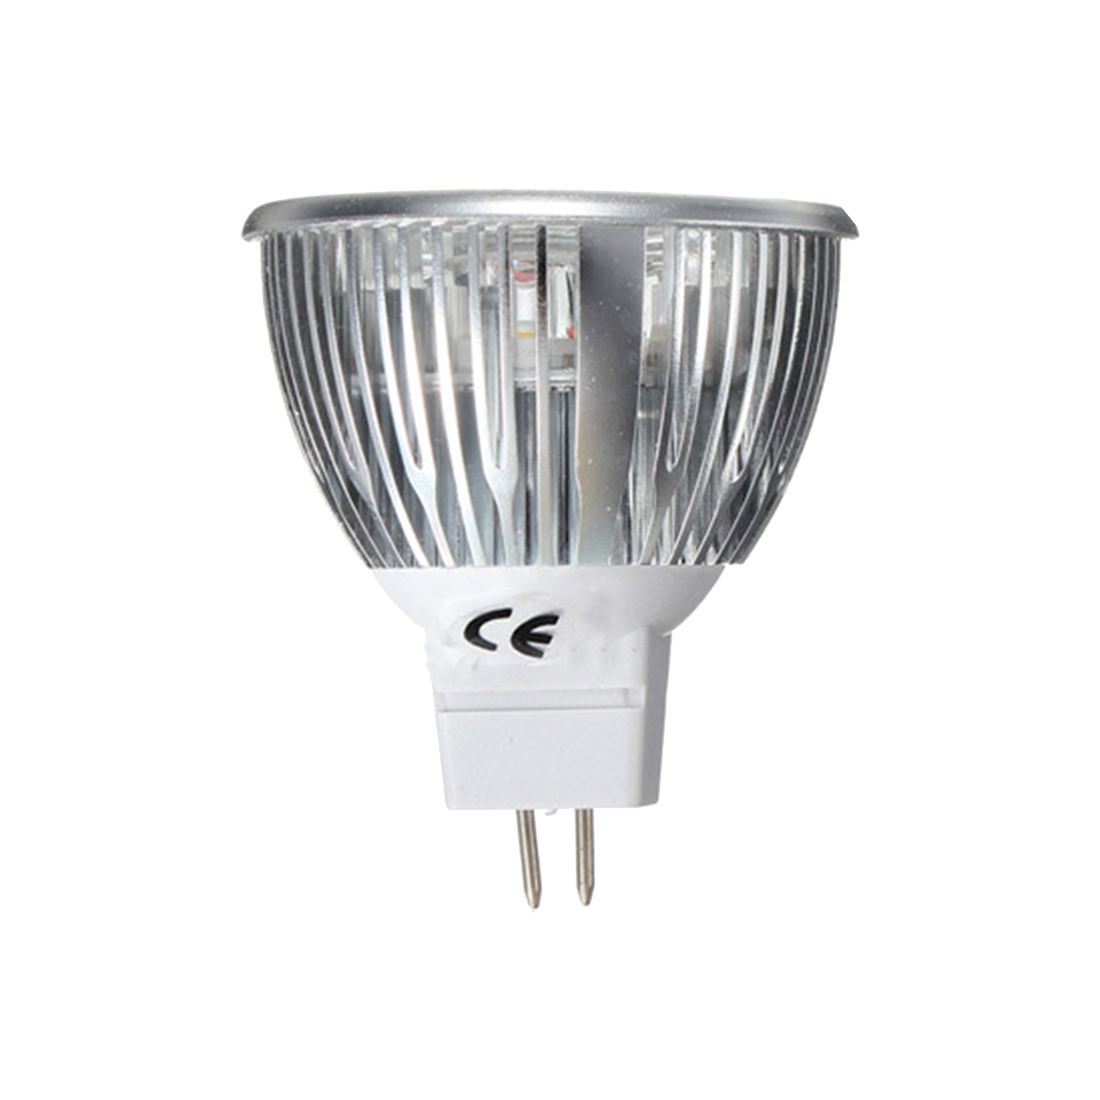 MR16 Saf/Sıcak LED Ampul Saf Beyaz-MR16-6W-3LED 12 V 4